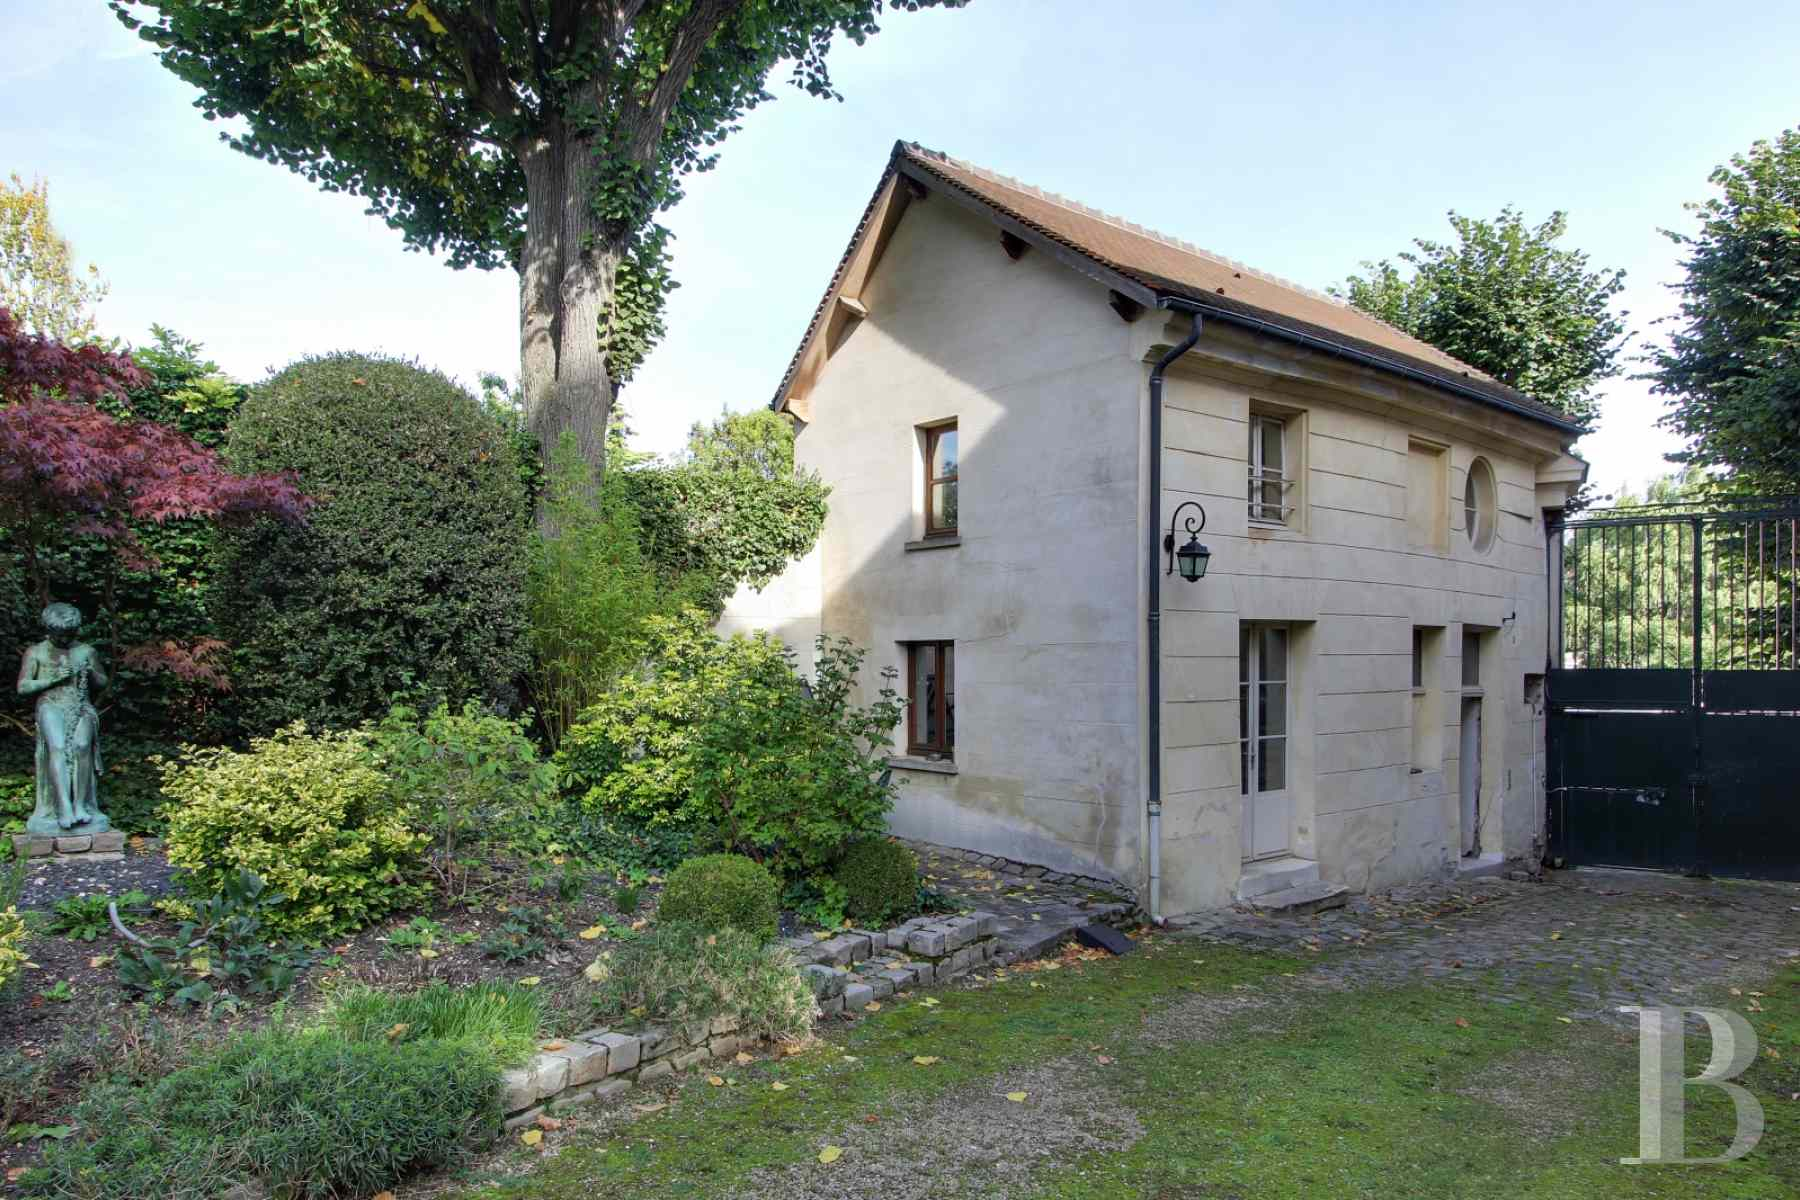 property for sale France paris antony property - 13 zoom